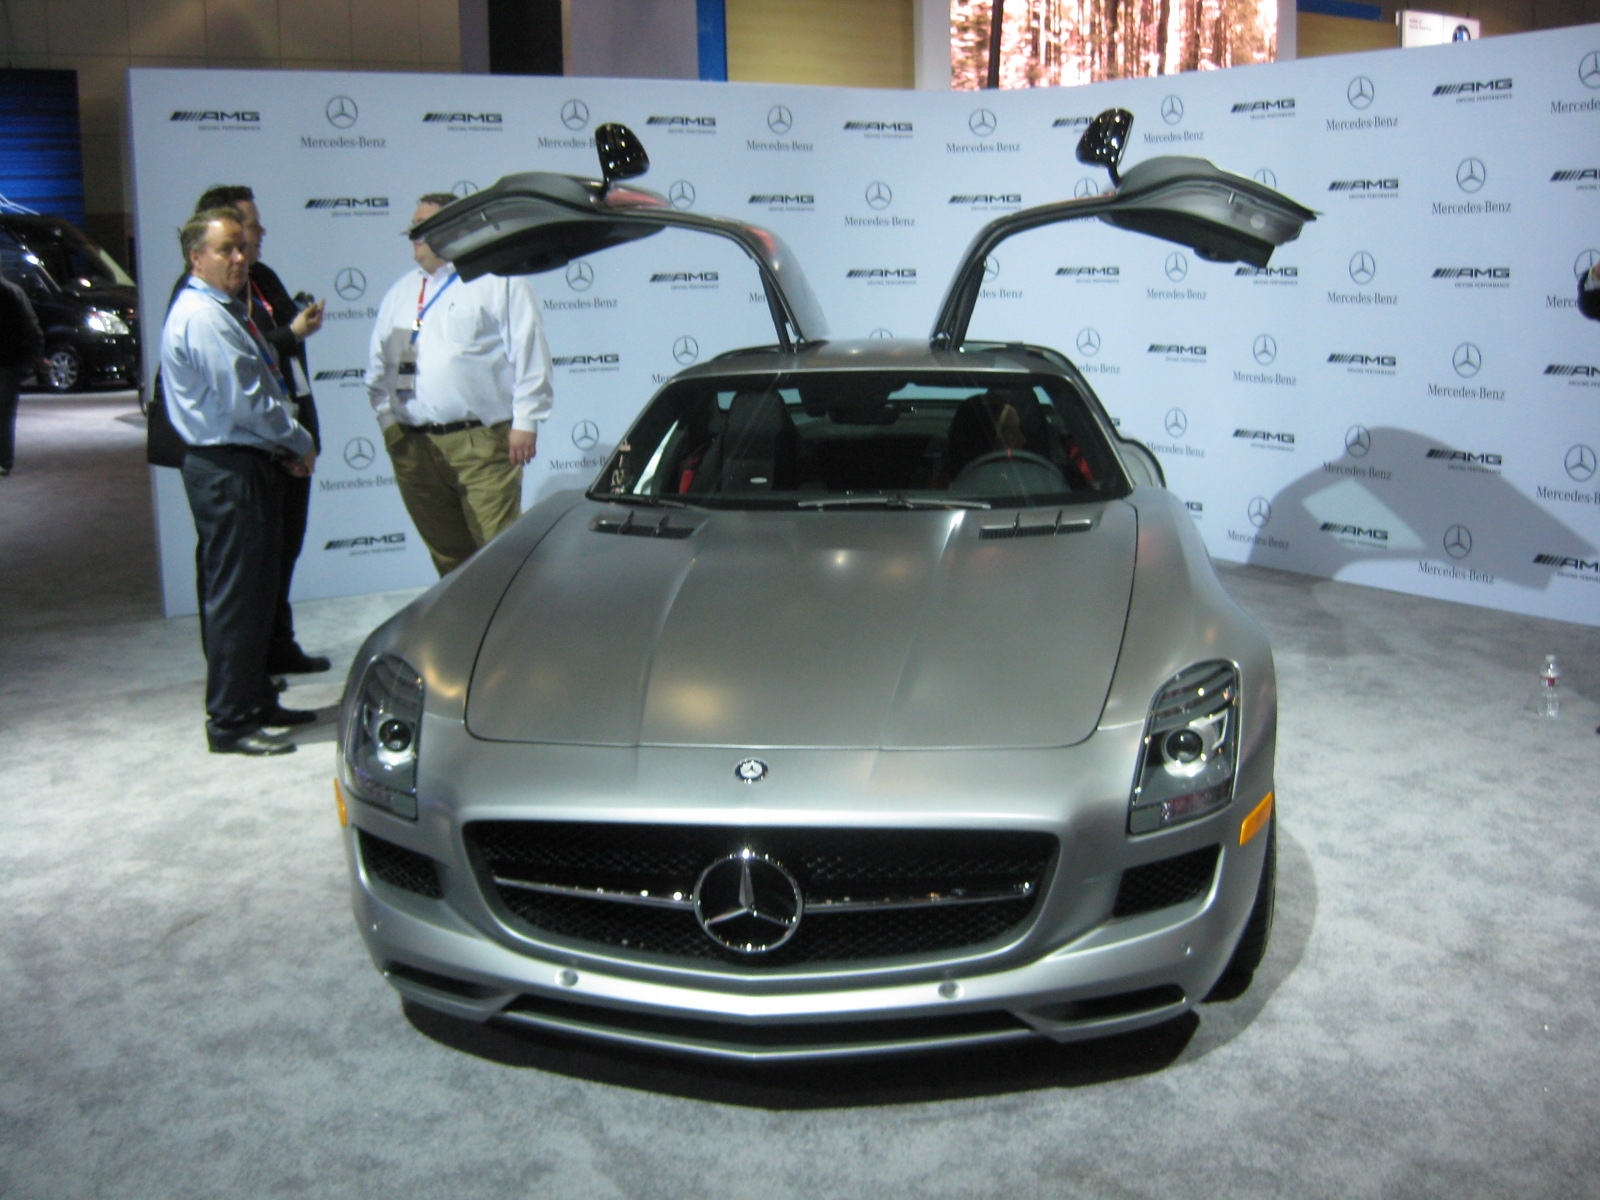 2012 Los Angeles Auto Show Part 4 » Mercedes u2013 2013 SLS AMG front doors up & Mercedes u2013 2013 SLS AMG front doors up | Todd Biancou0027s ...